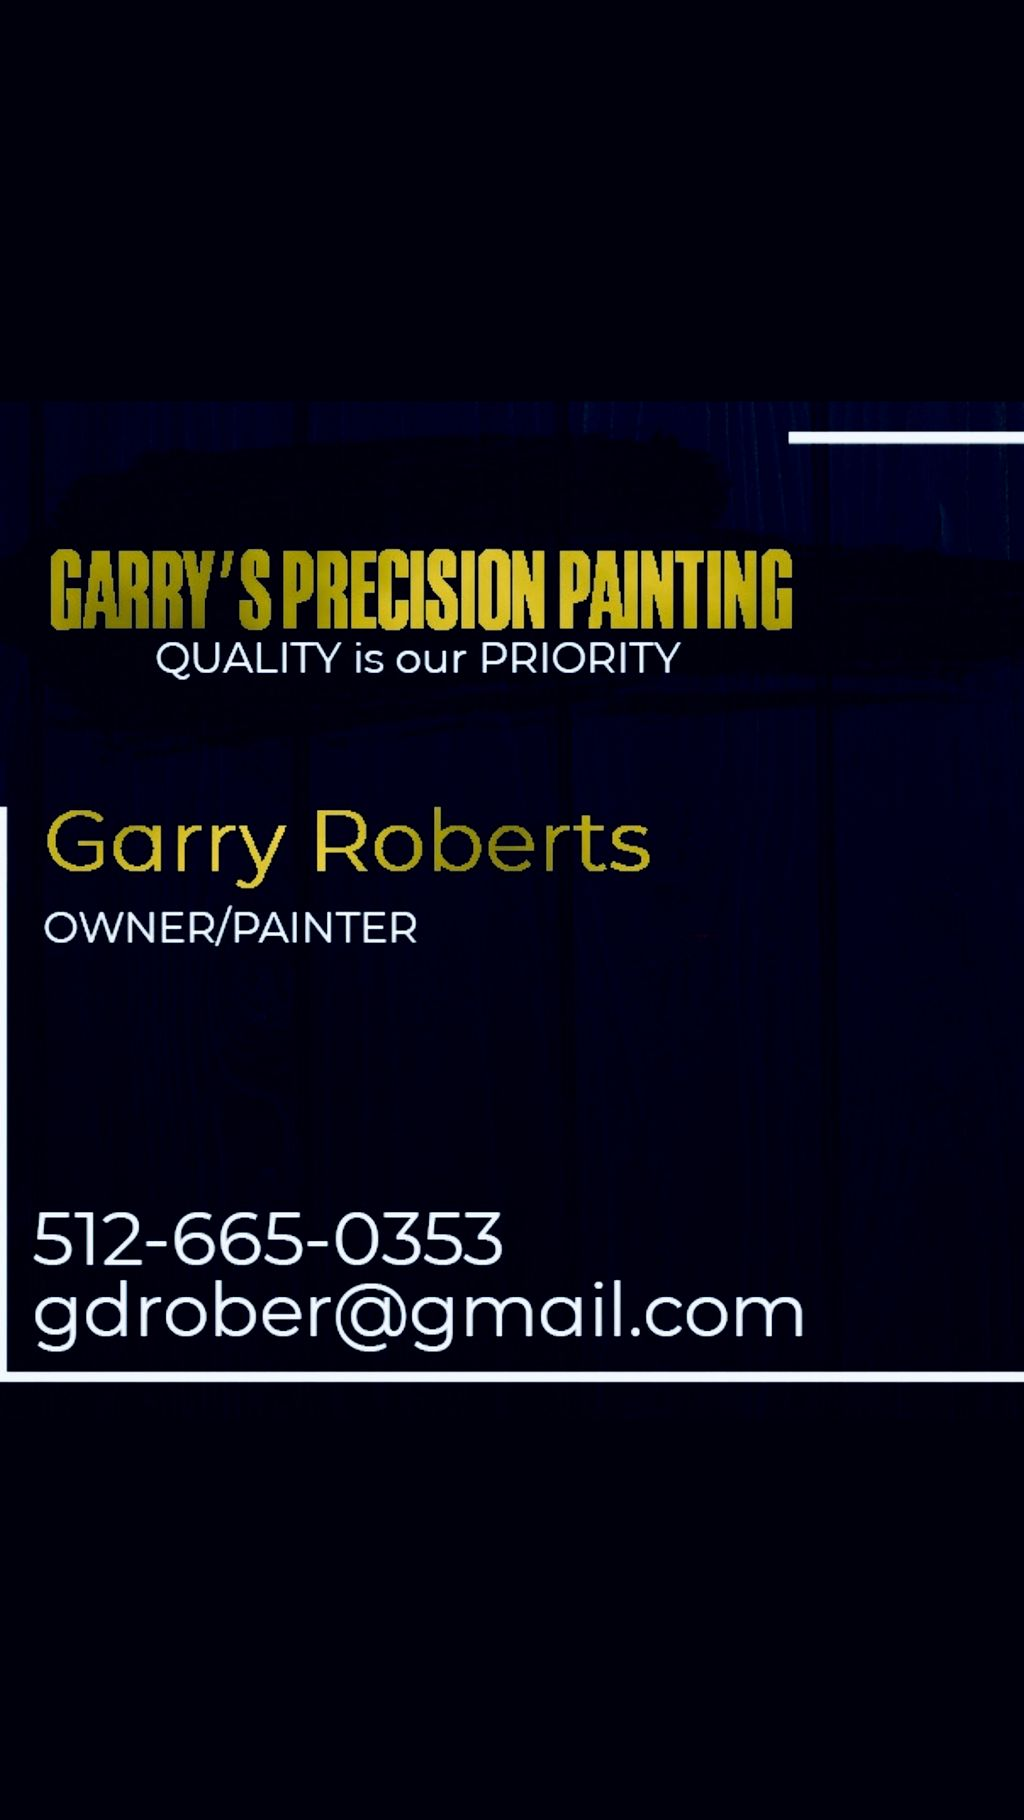 Garry's Precision Painting & More